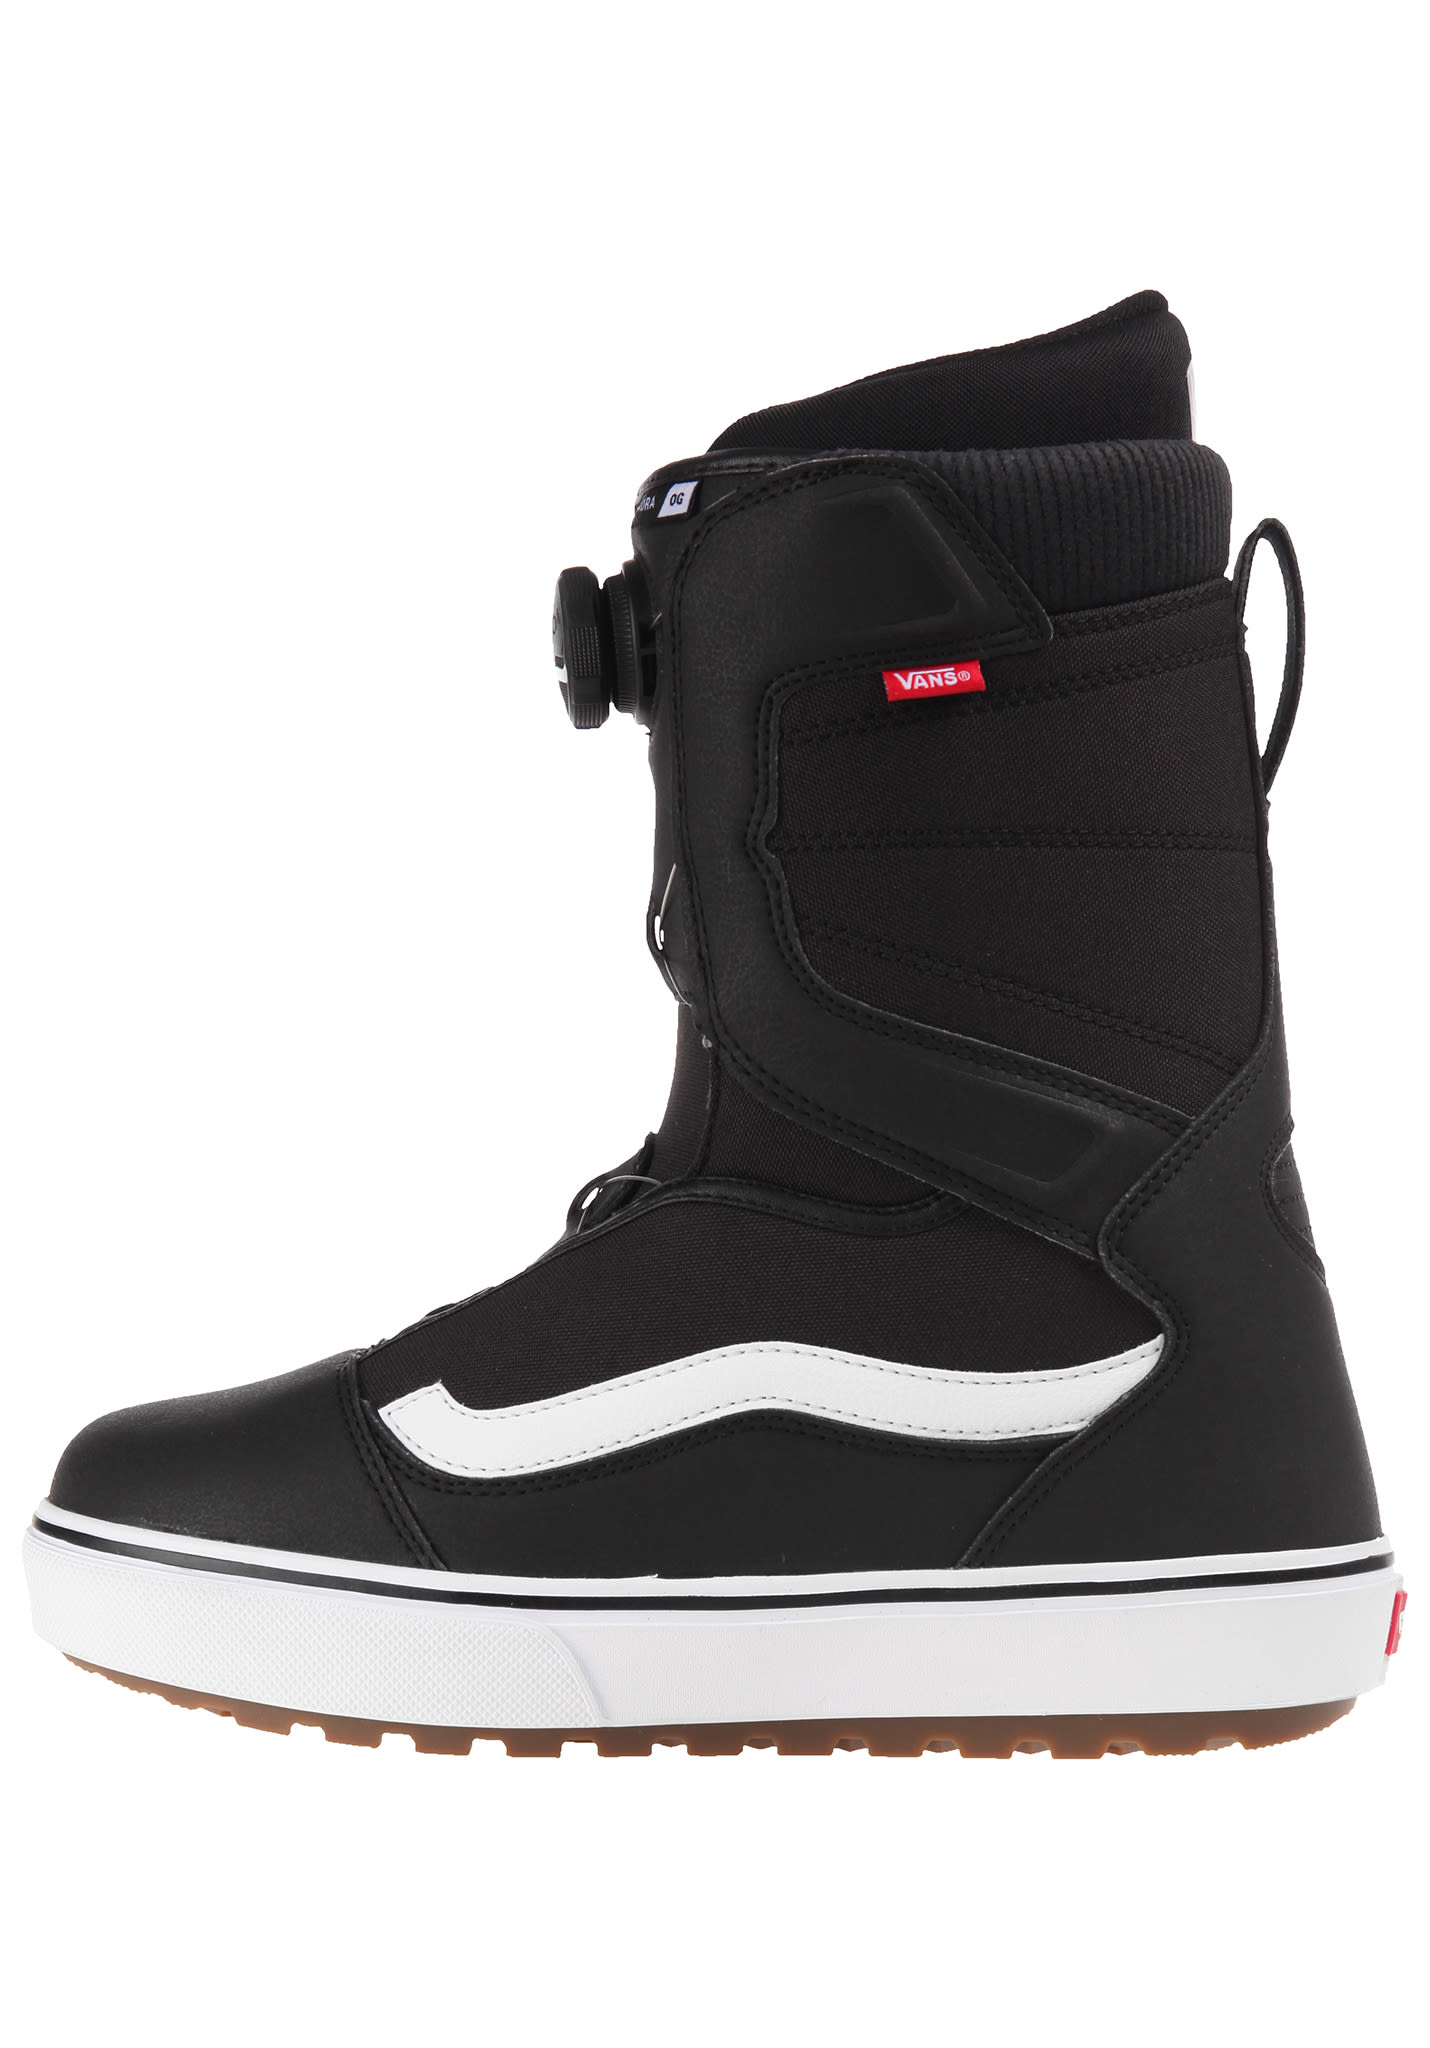 3793537acd Vans Aura OG - Snowboard Boots for Men - Black - Planet Sports